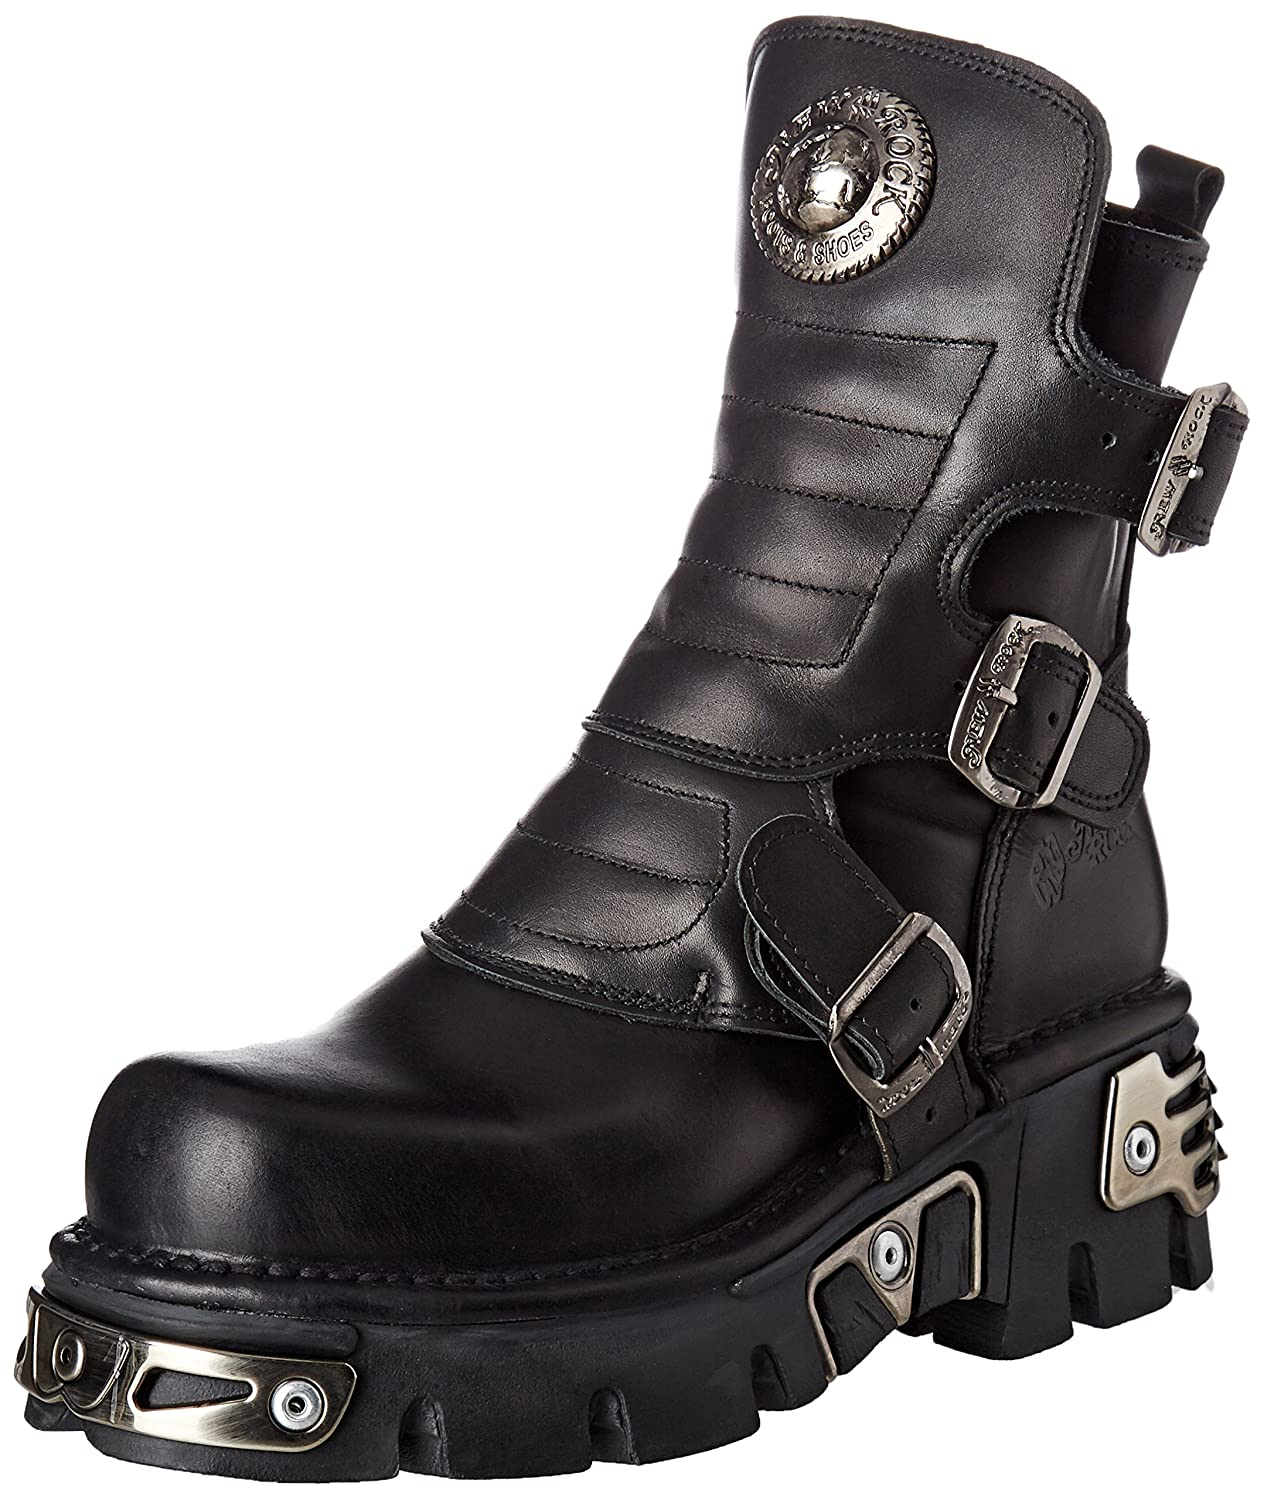 New Rock M-391X-S1, Bottes Motardes Mixte Adulte, Noir (Black), 42 EU